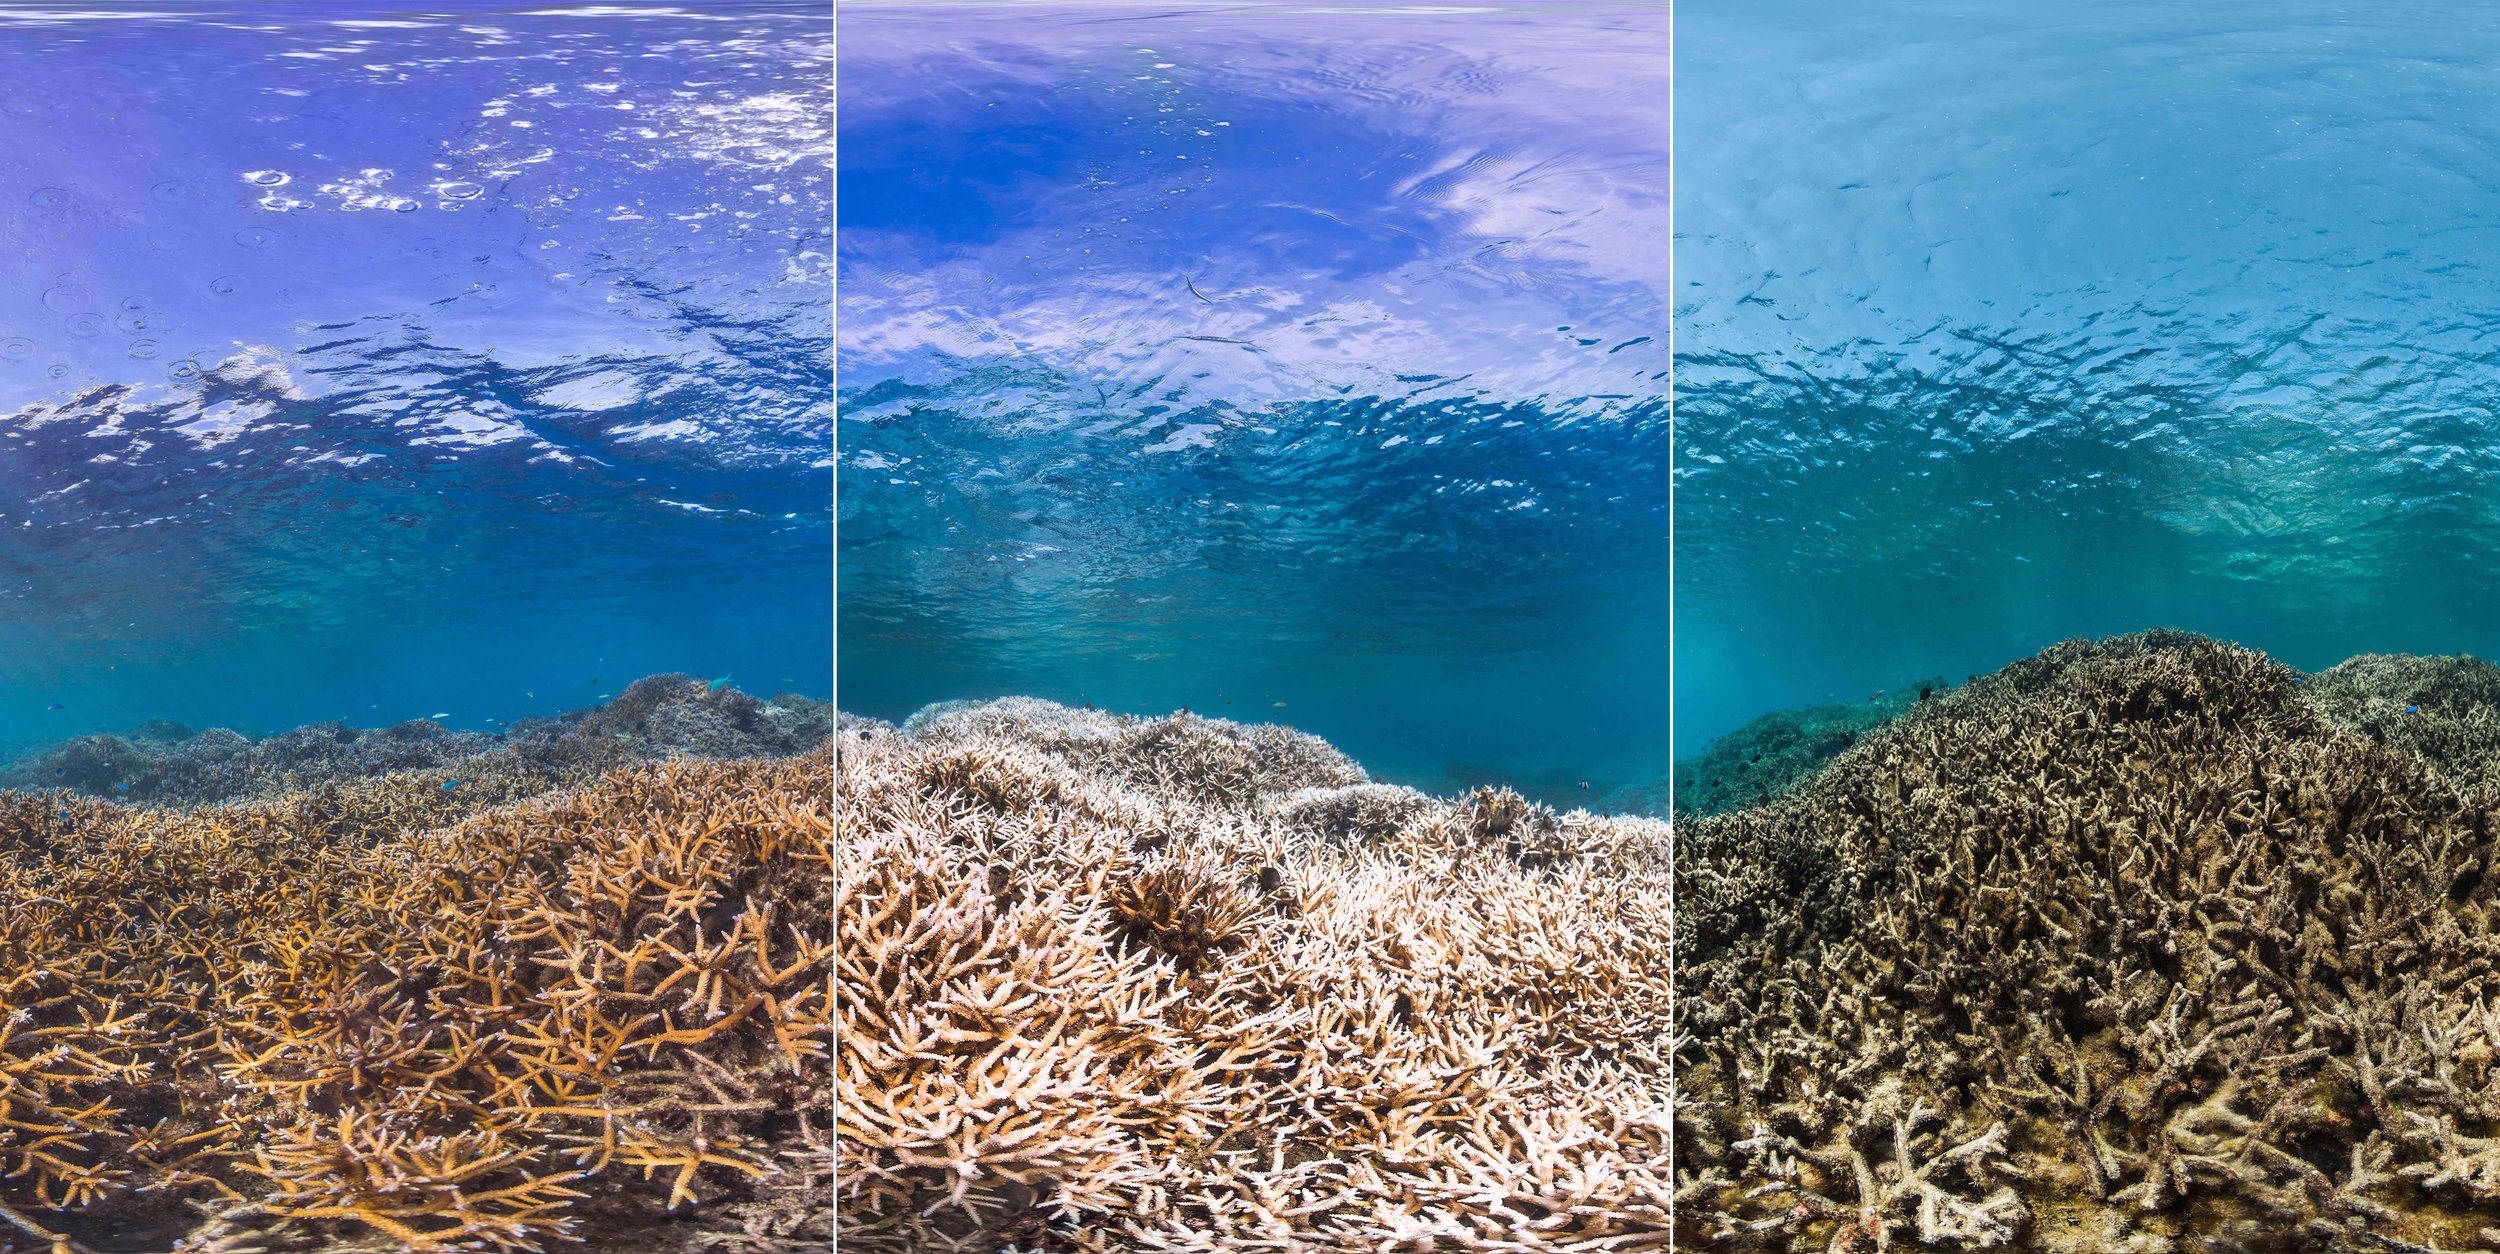 Picture credit: The Ocean Agency / XL Catlin Seaview Survey